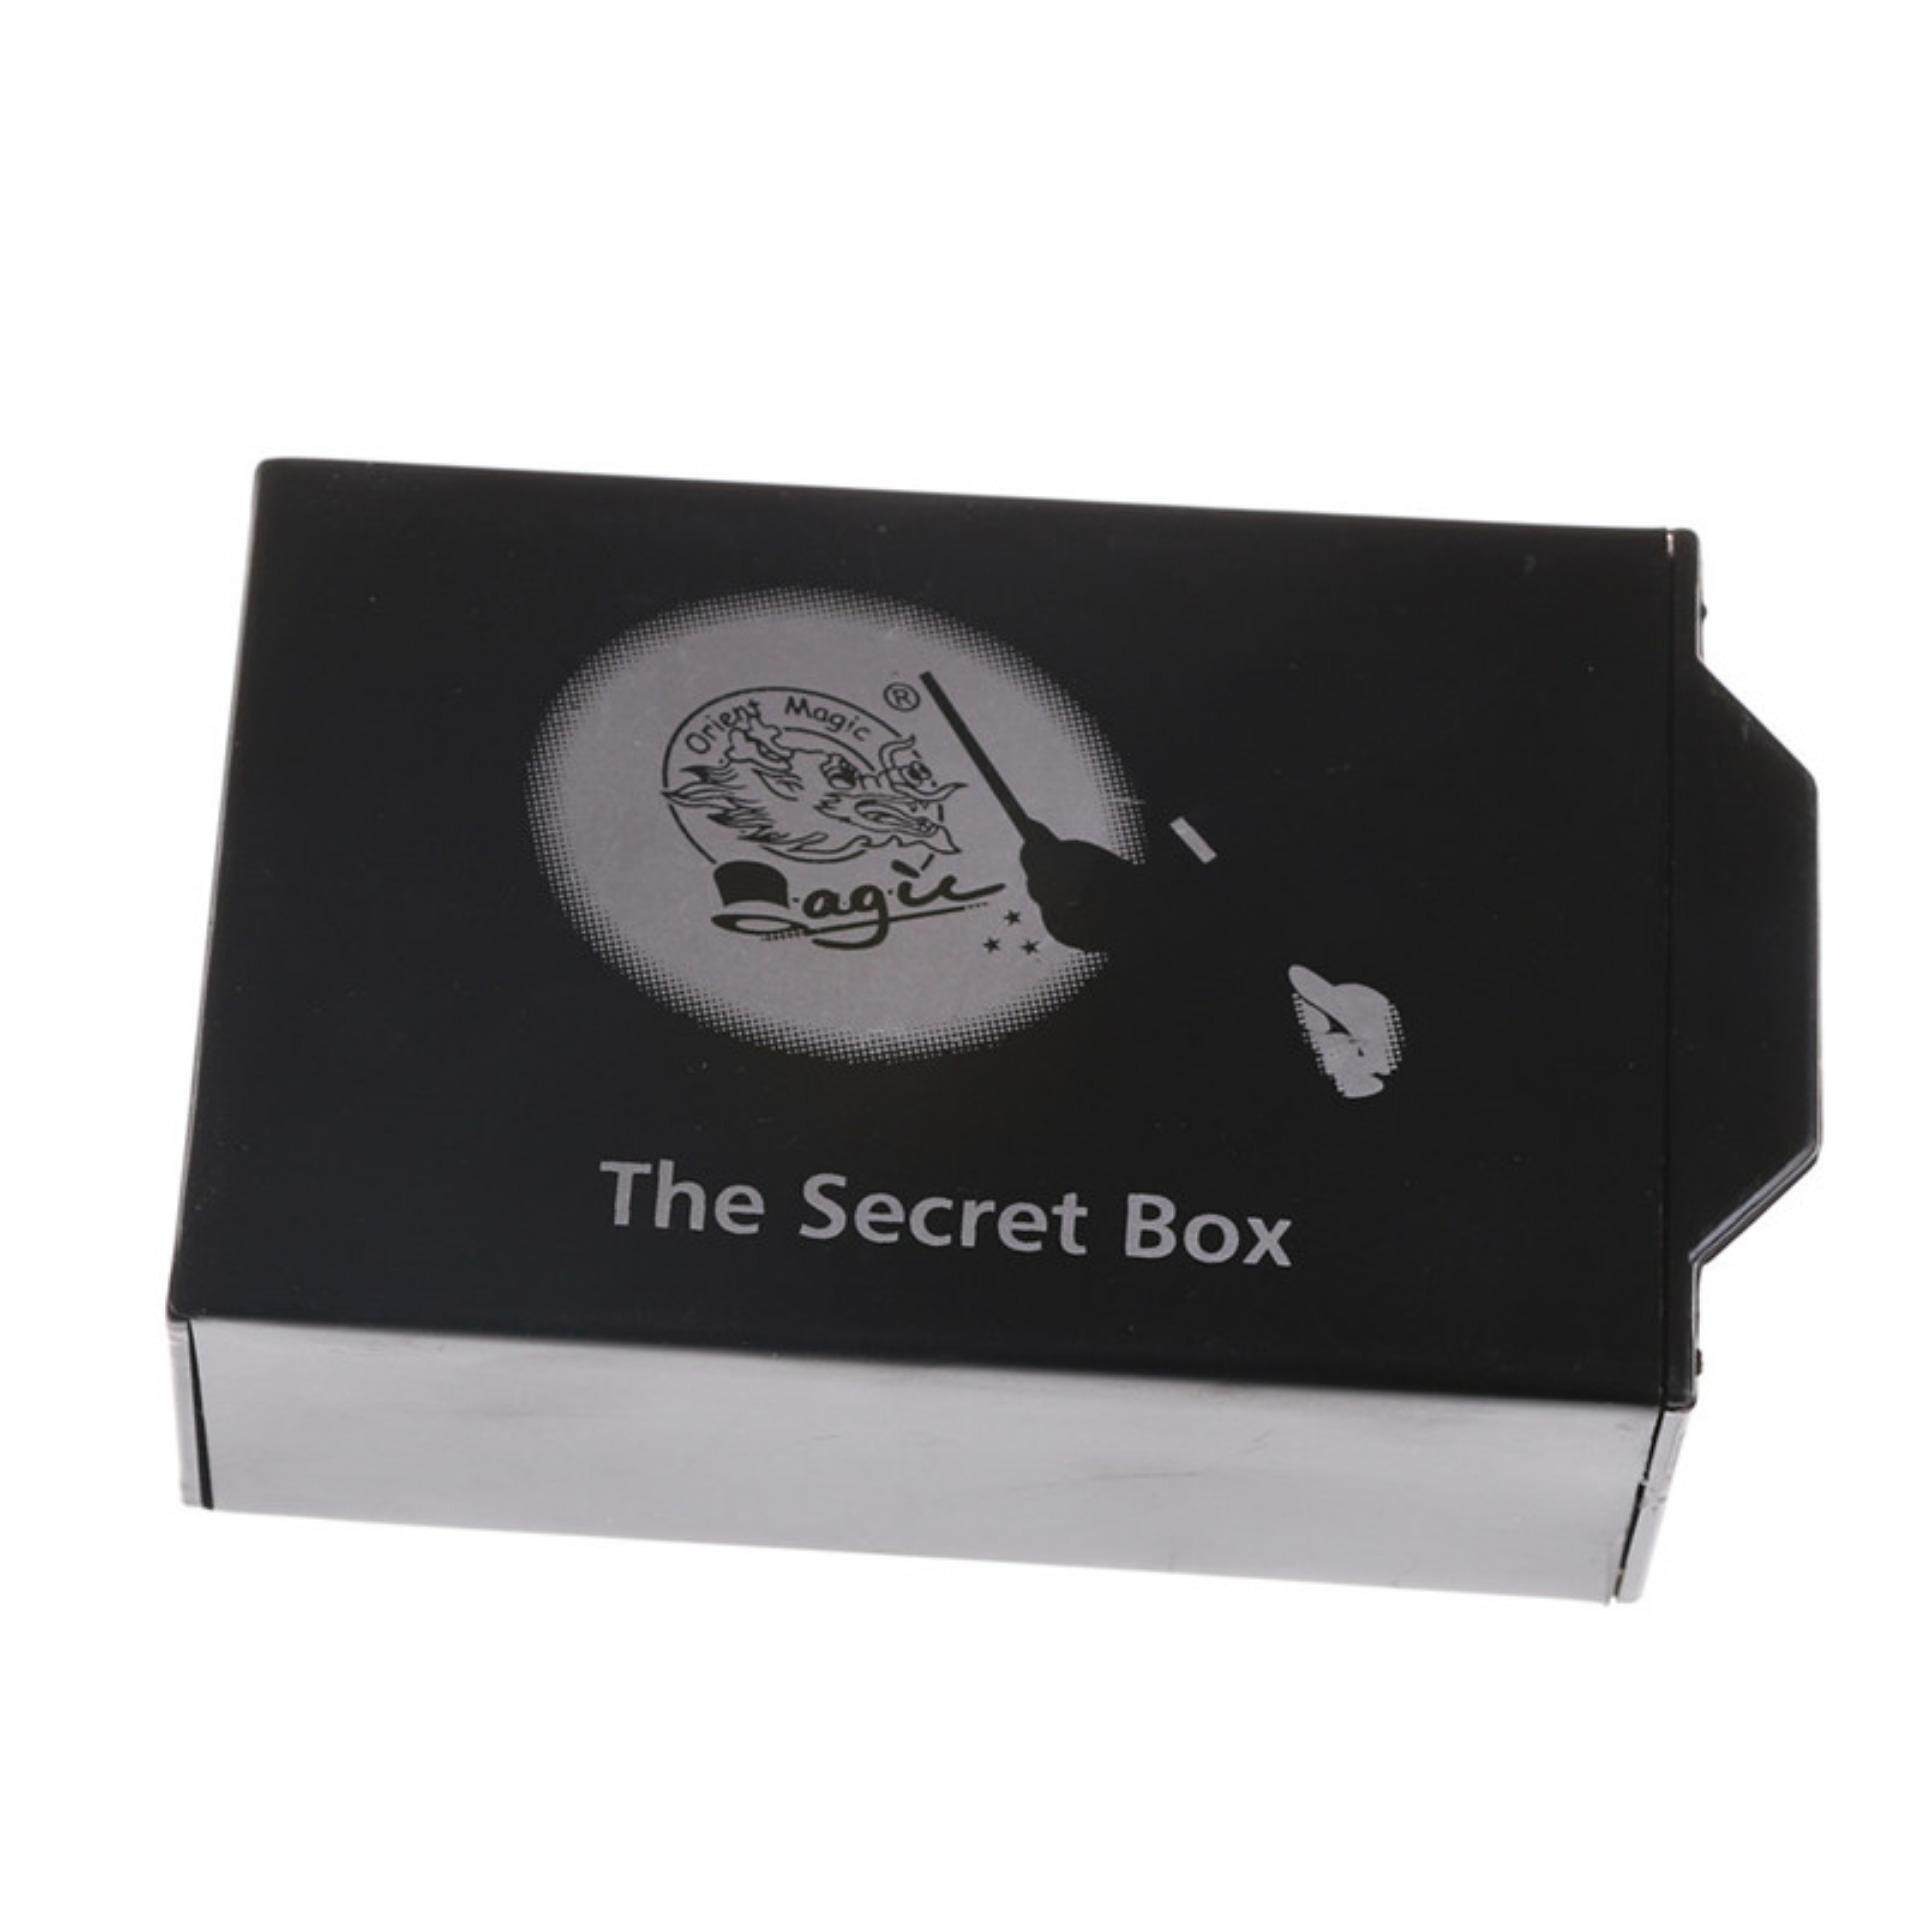 Magic Props The Secret Box Magic Black Pull Box Magic Tool Kids Trick Toys By Gorgeous Road.